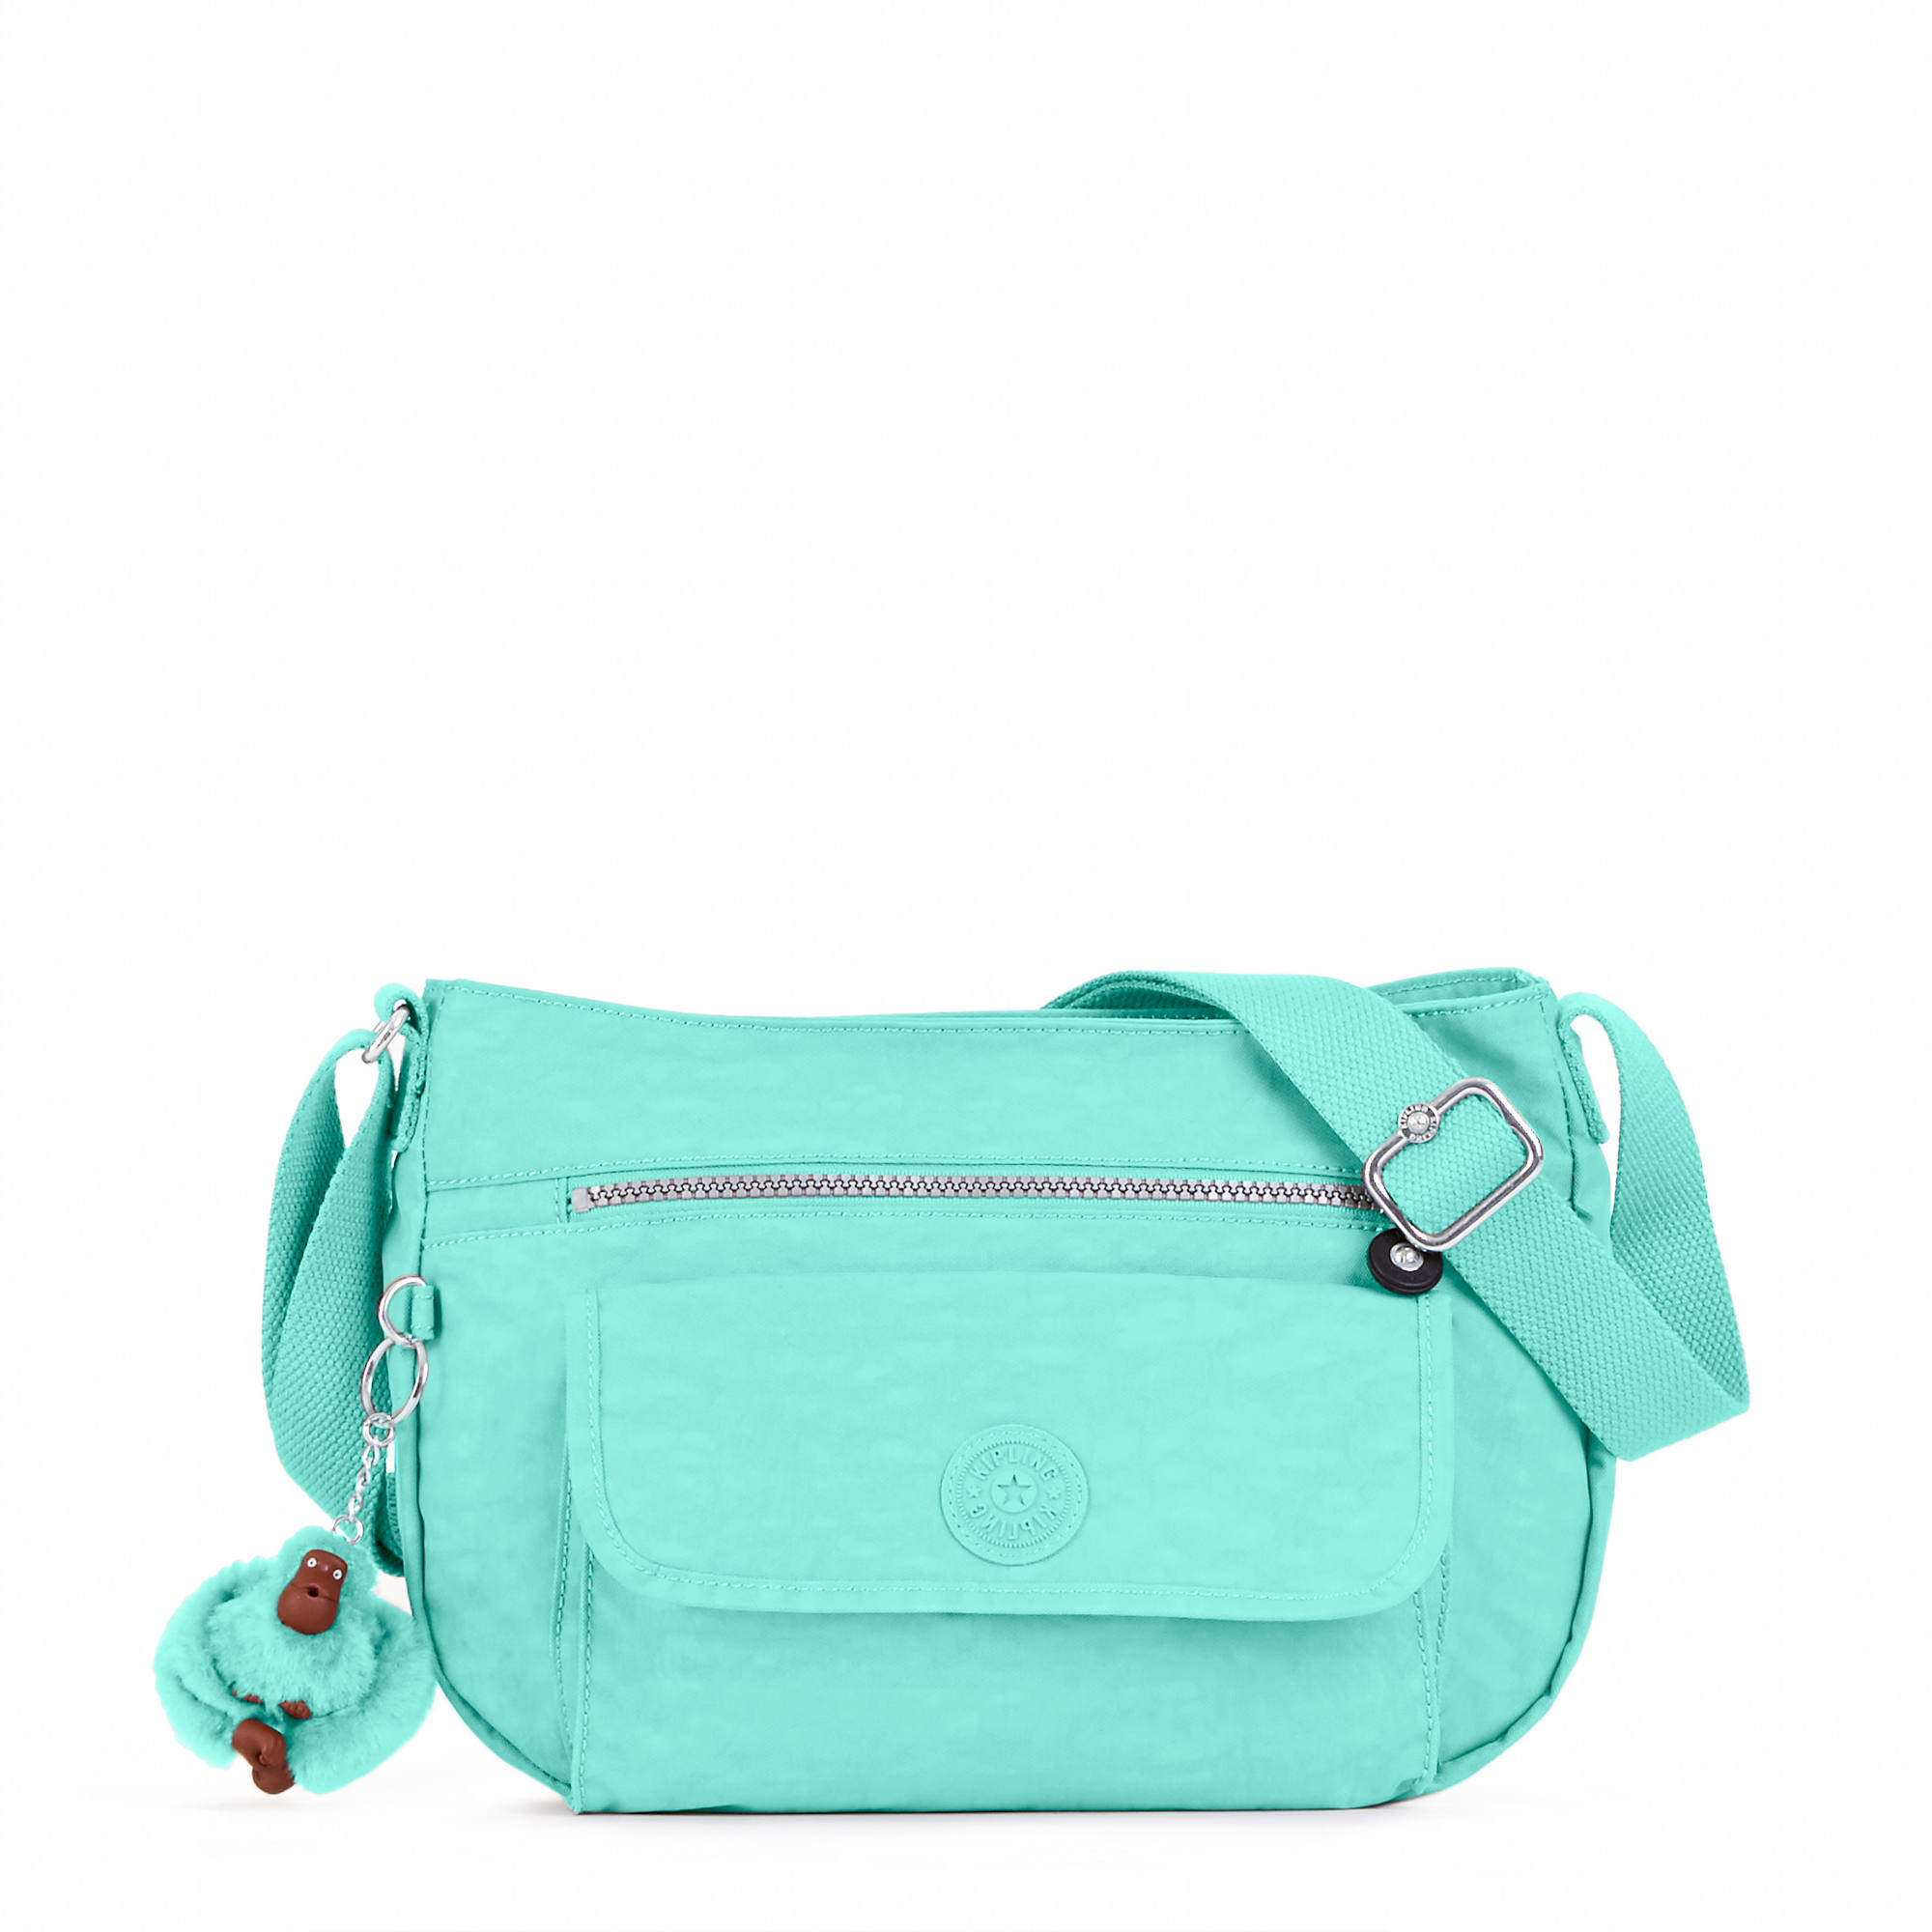 226f516c7bb Syro Crossbody Bag,Fresh Teal,large